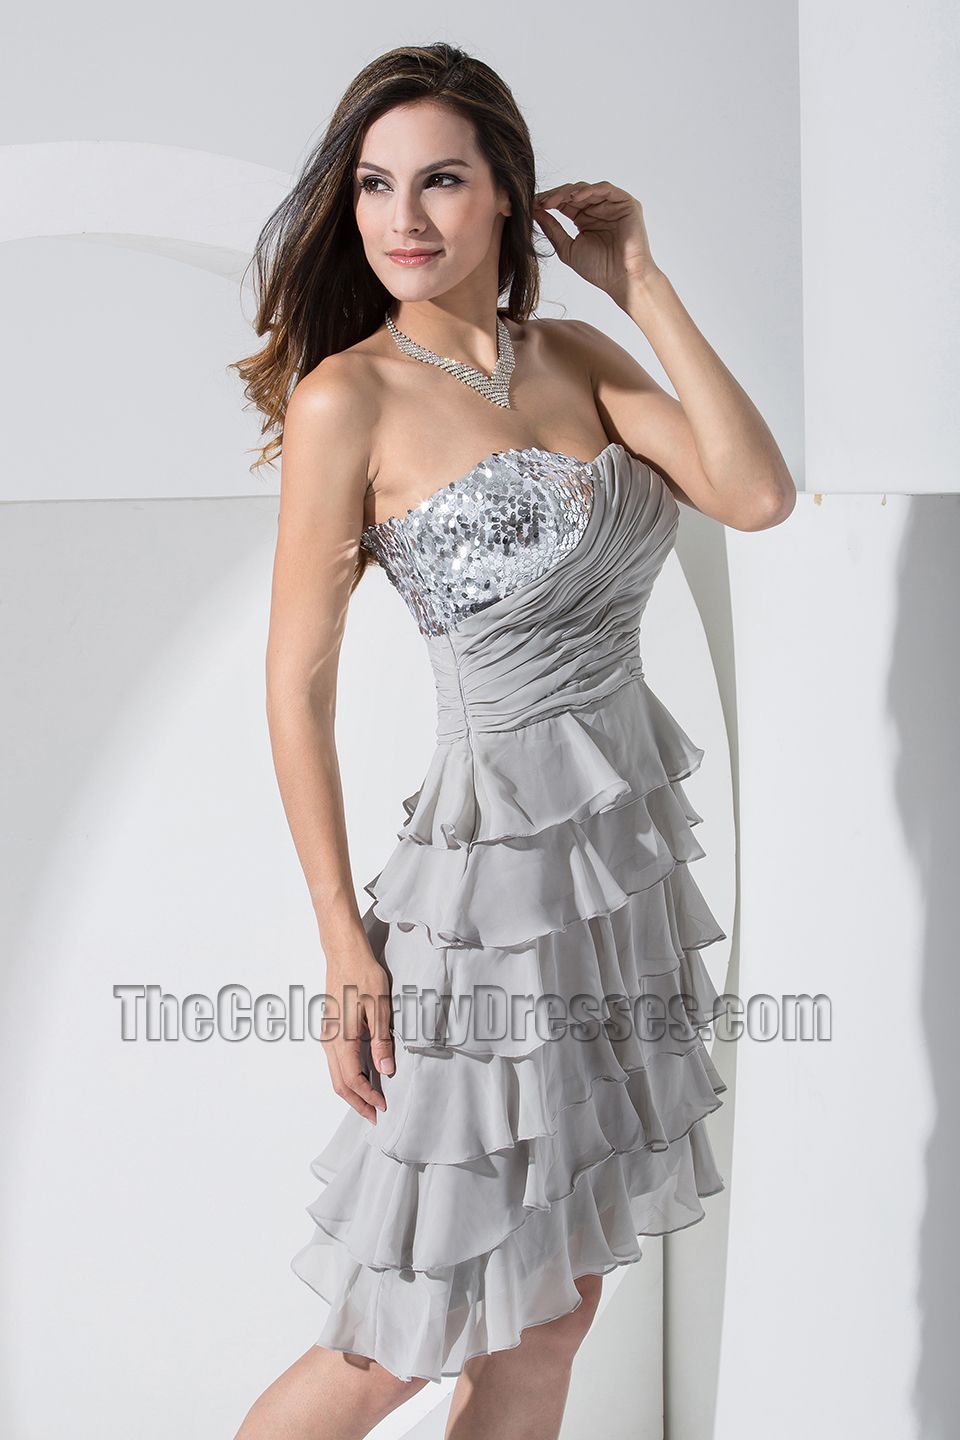 New style silver chiffon strapless cocktail dress party dresses new style silver chiffon strapless cocktail dress party dresses thecelebritydresses ombrellifo Image collections